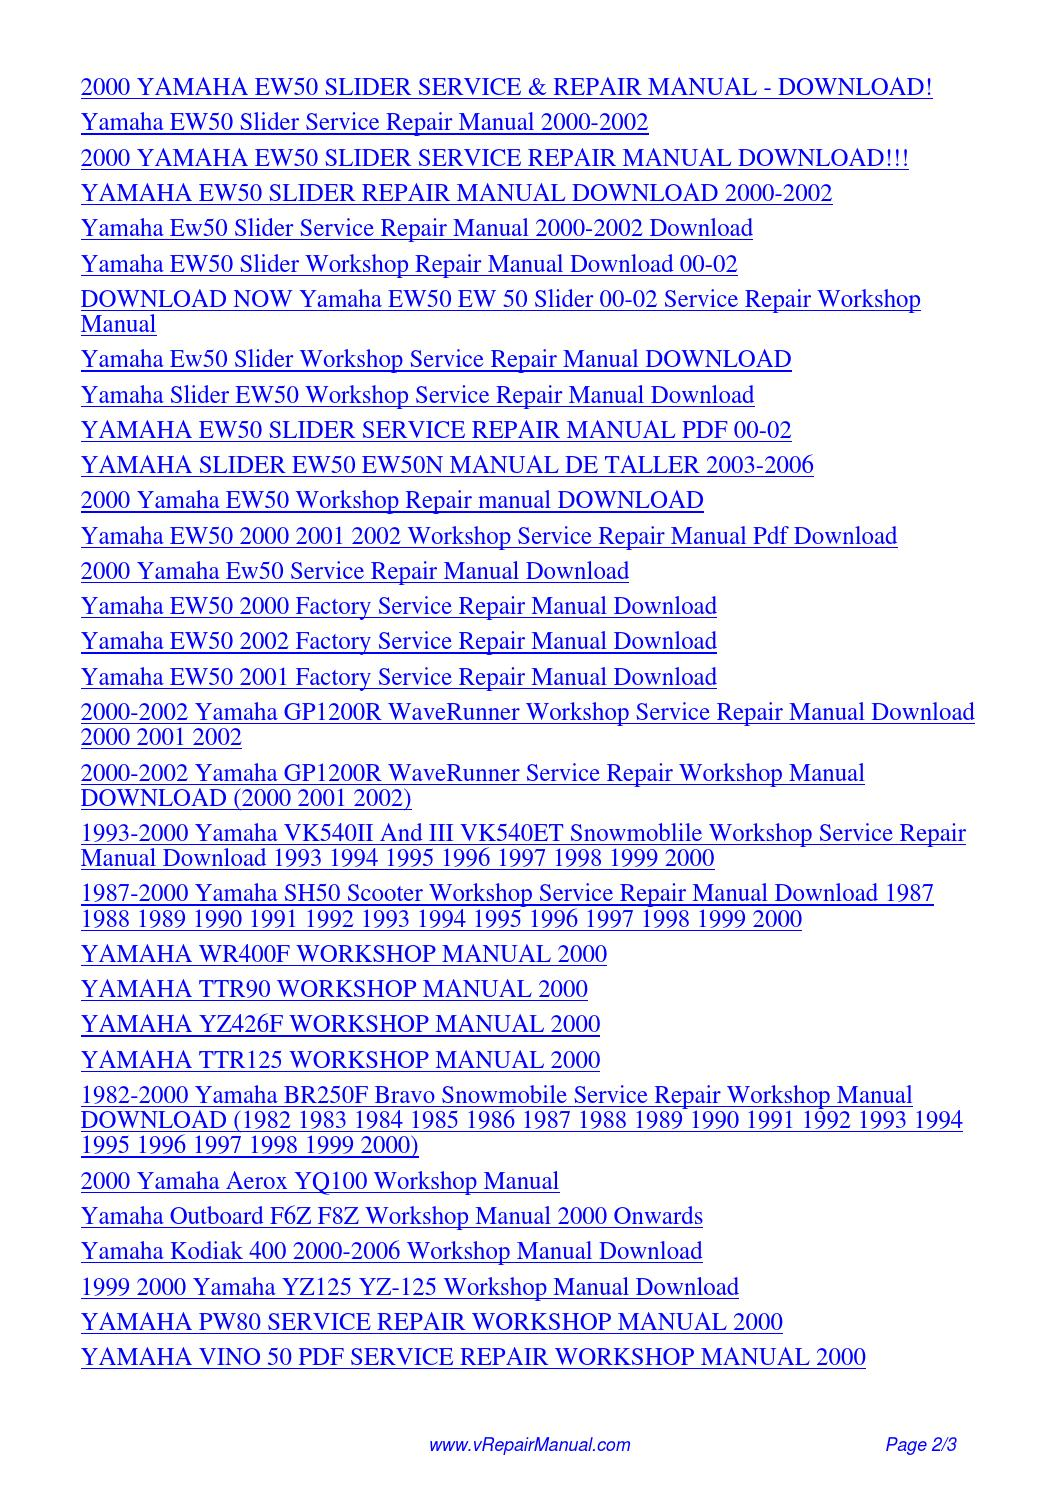 hight resolution of yamaha ew50 slider service repair workshop manual 2000 pdf by david zhang issuu